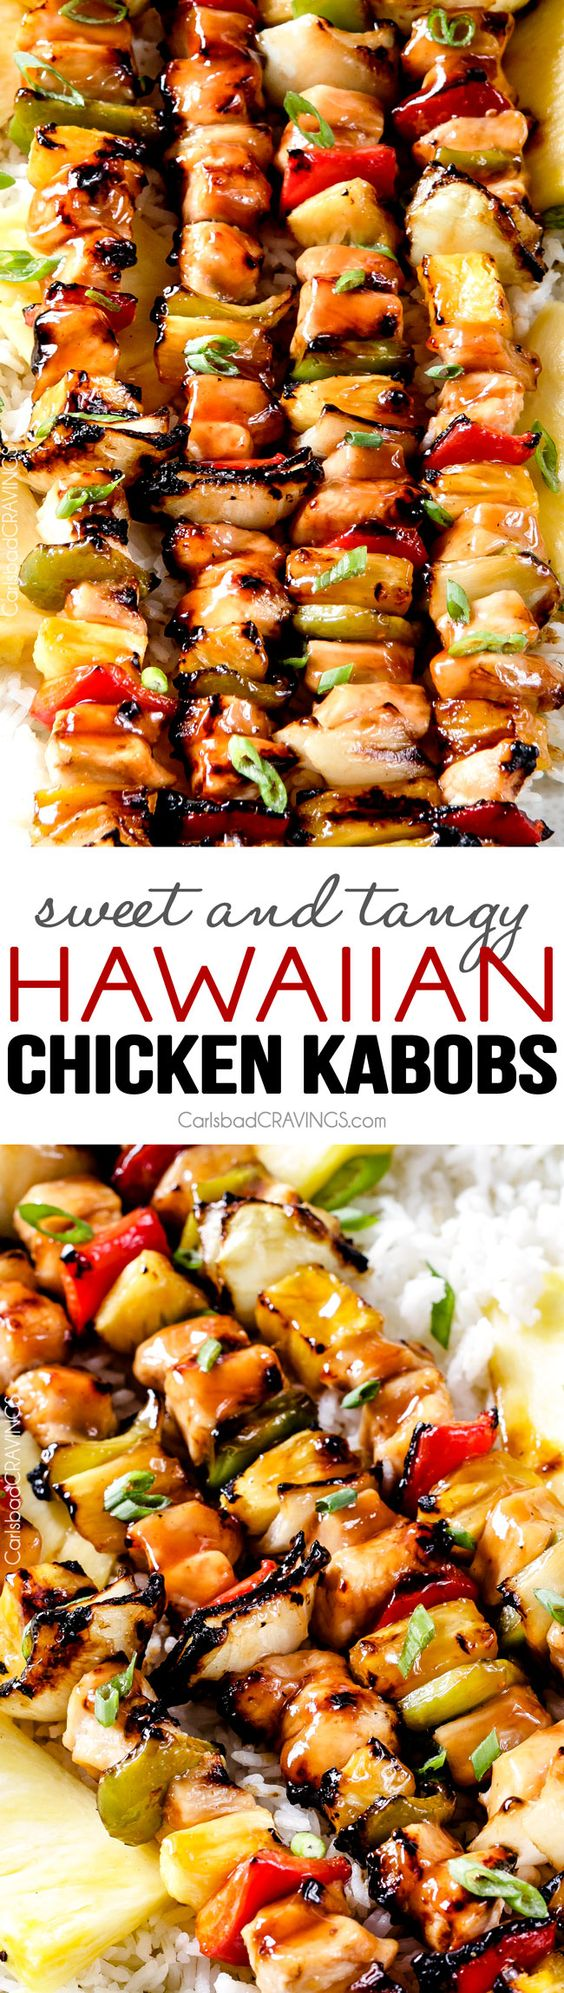 sauces kabobs world chicken kabobs hawaiian chicken sweet chicken ...